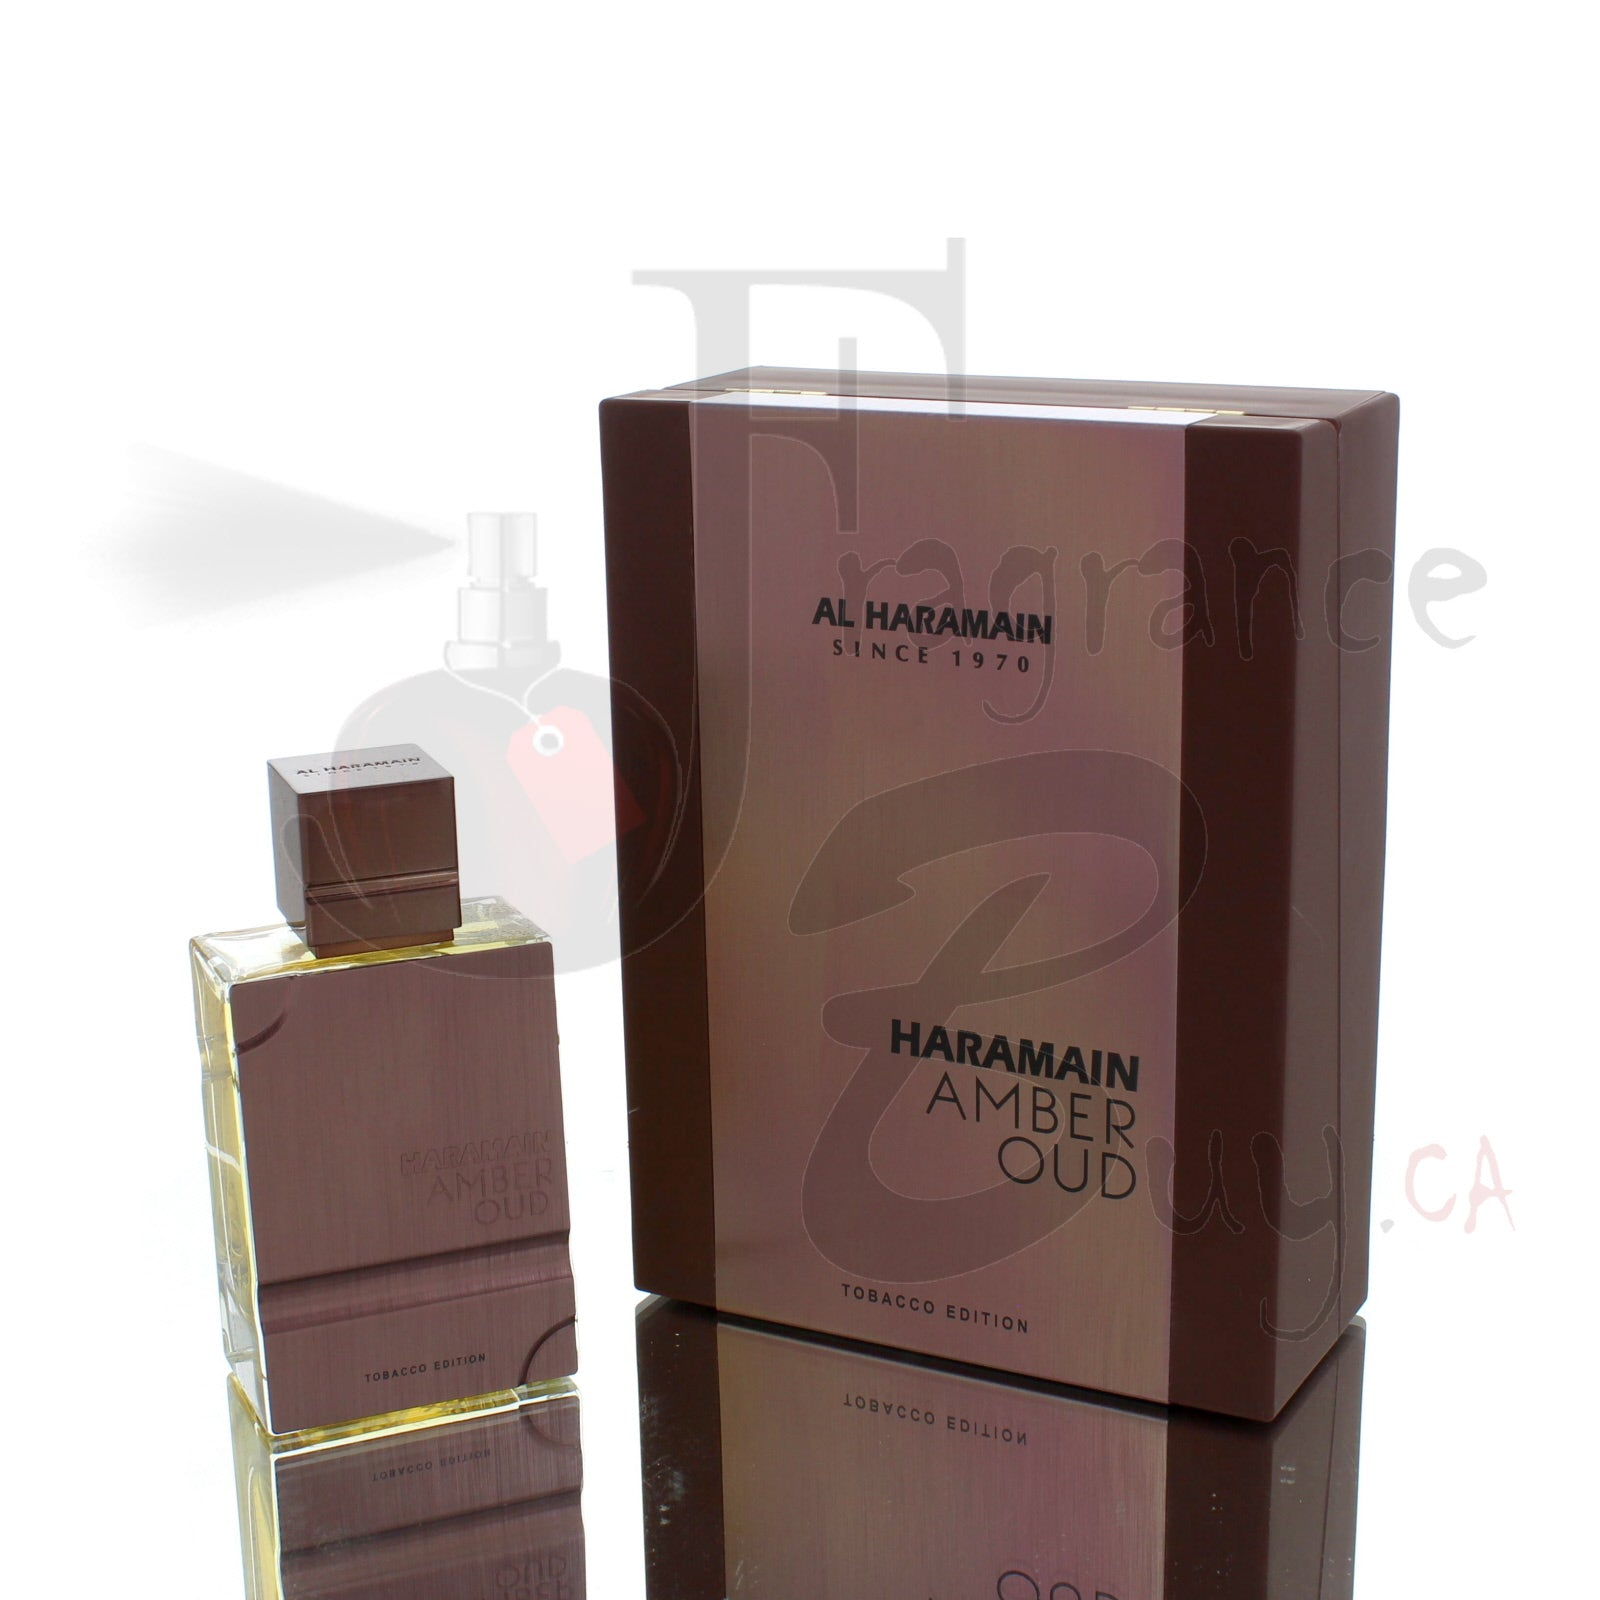 Al Haramain Amber Oud Tobacco Edition For Man